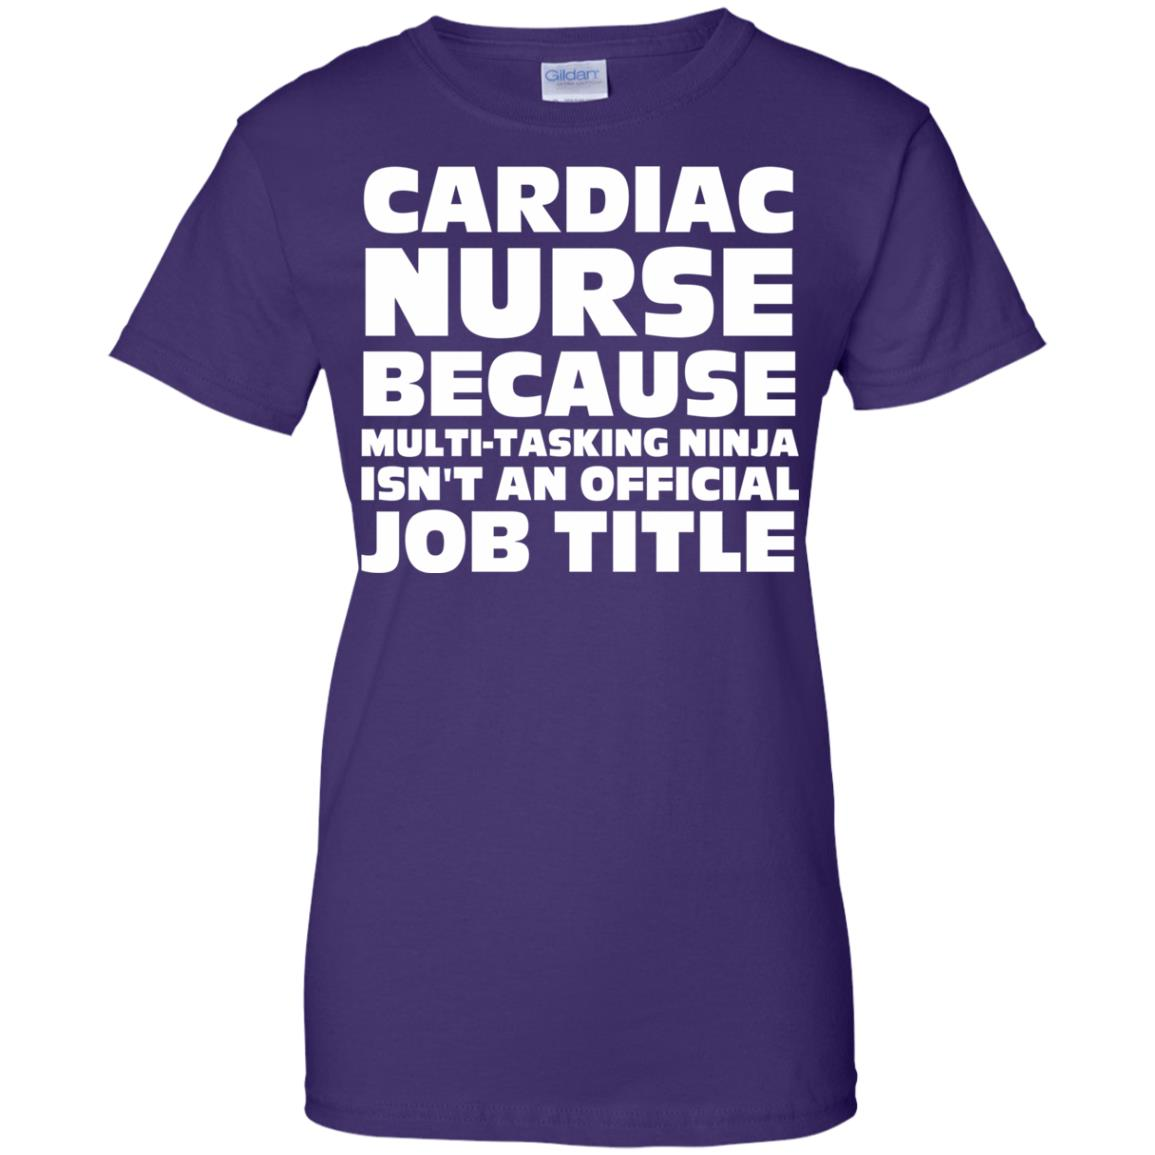 cardiac nurse shirt 10 off favormerch